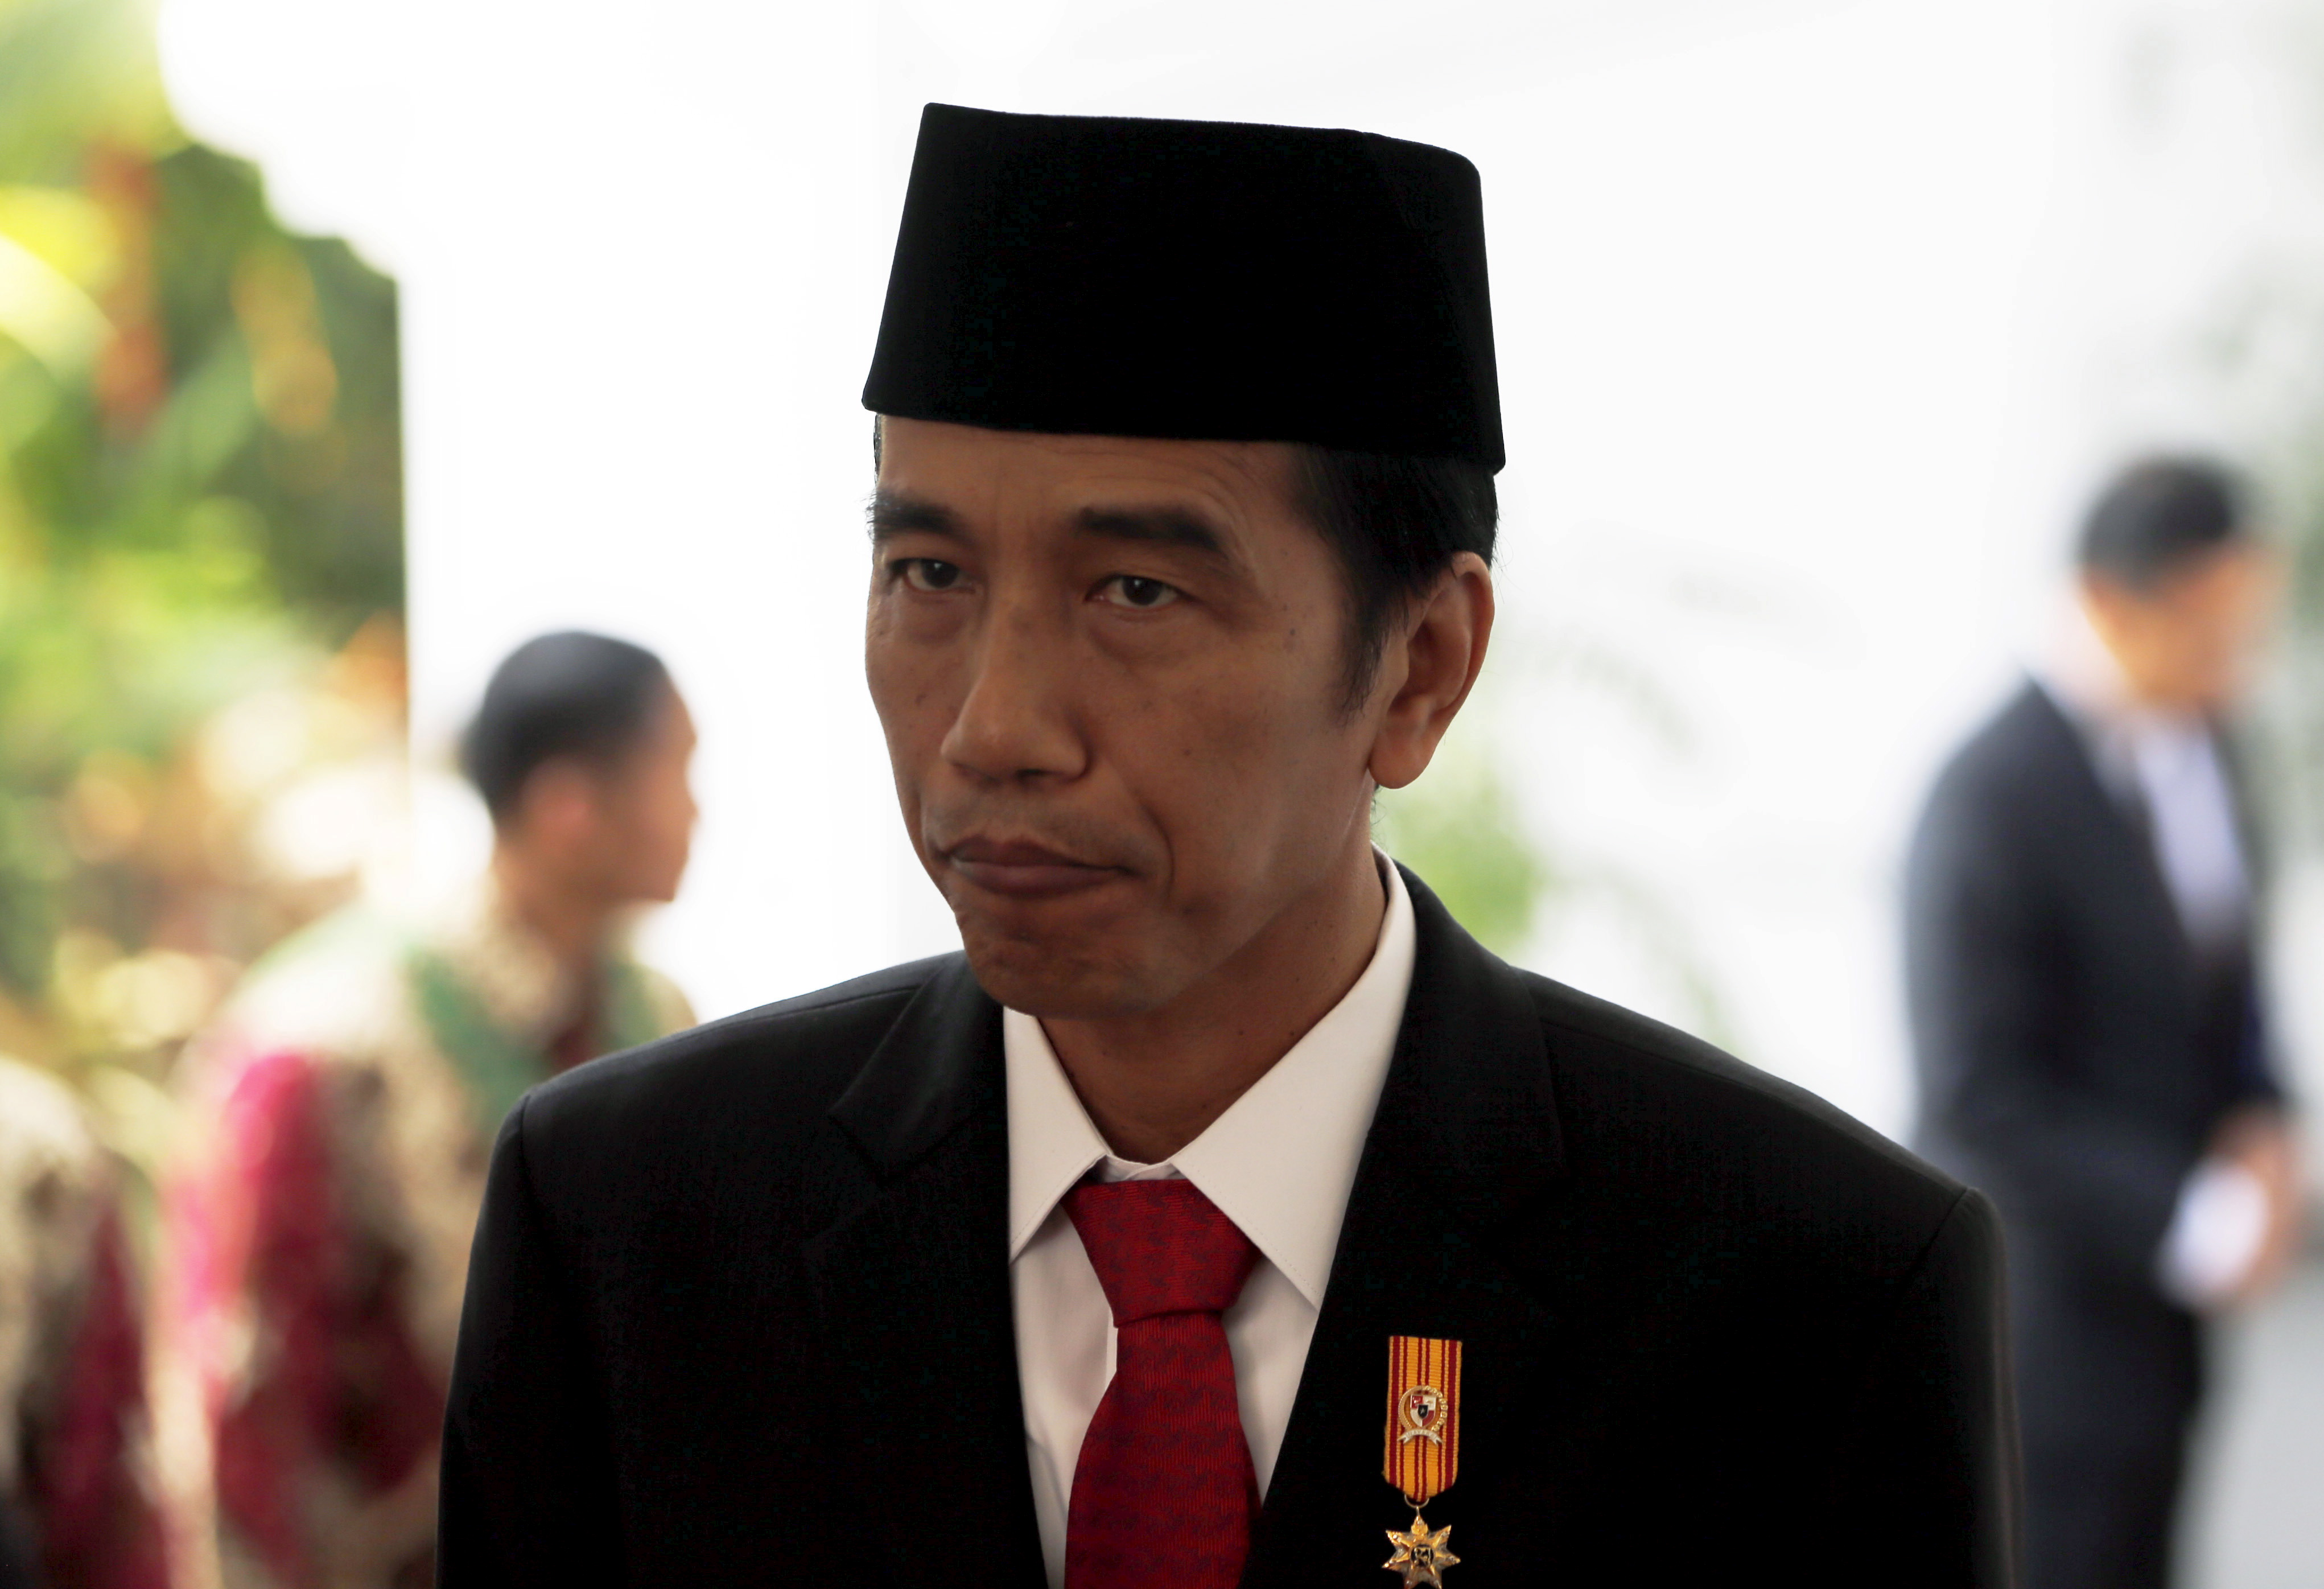 Indonesian President Joko Widodo is pictured after seeing off Danish Queen Margarethe at the presidential palace in Jakarta on Oct. 22, 2015